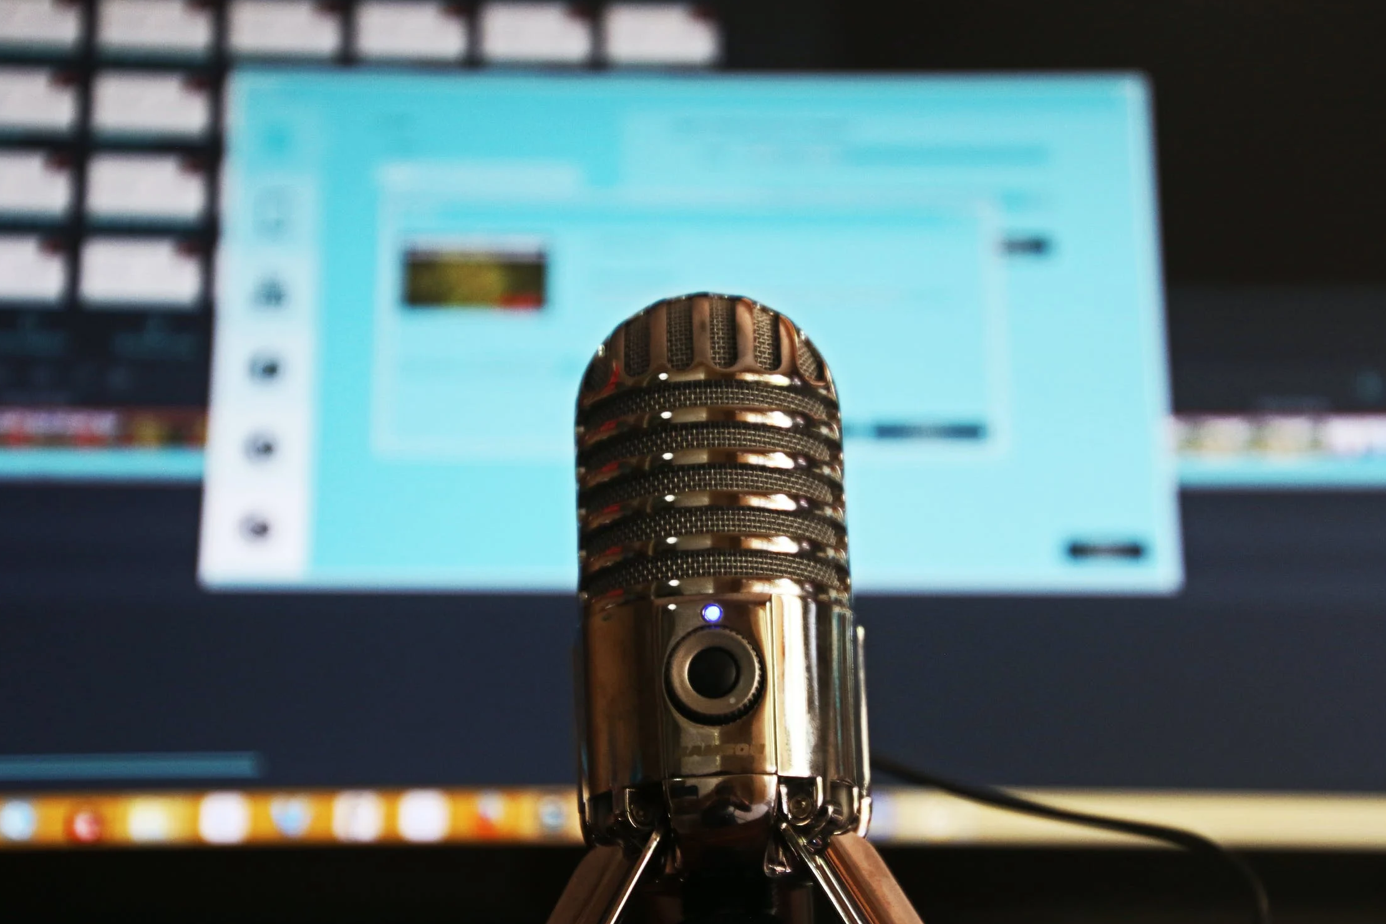 Selective focus shot of a microphone; image by Magda Ehlers, via Pexels.com.